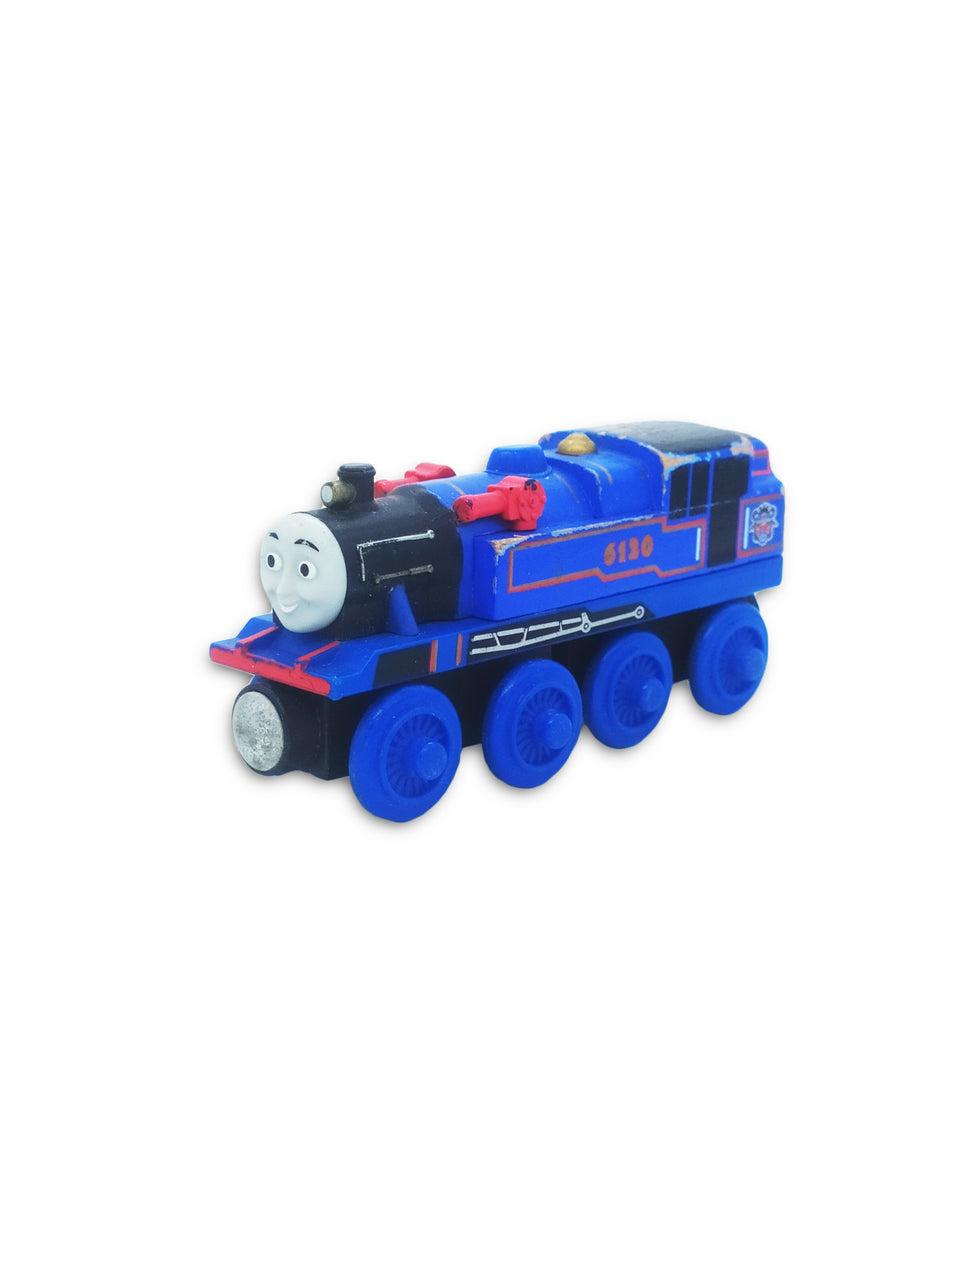 Belle Blue Engine -Thomas & Friends